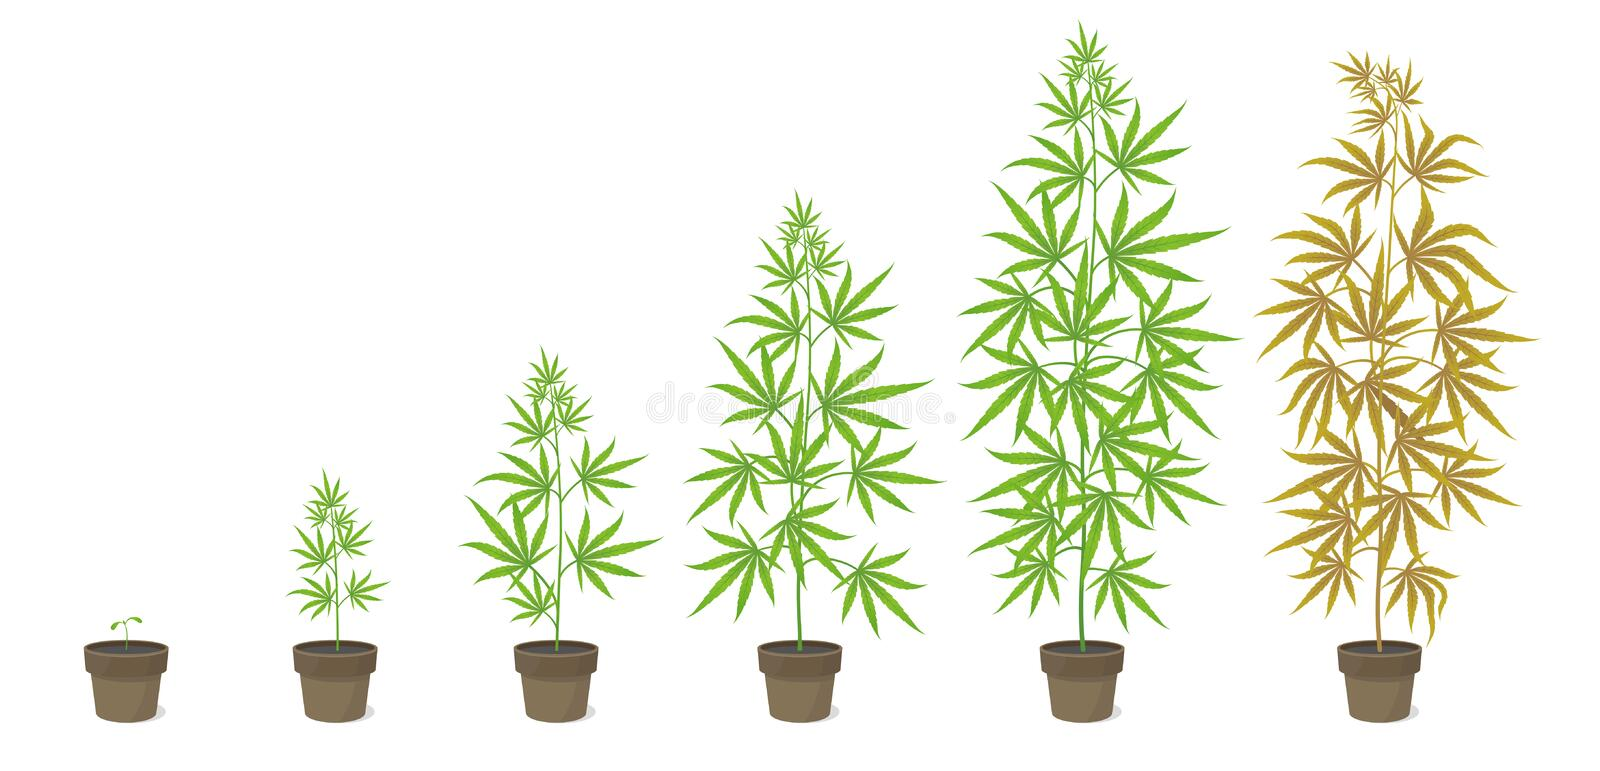 The Growth Cycle of Cannabis sativa potted plant. Marijuana phases set. Hemp ripening period. The life stages. Weed. Growing. Infographic vector illustration stock illustration